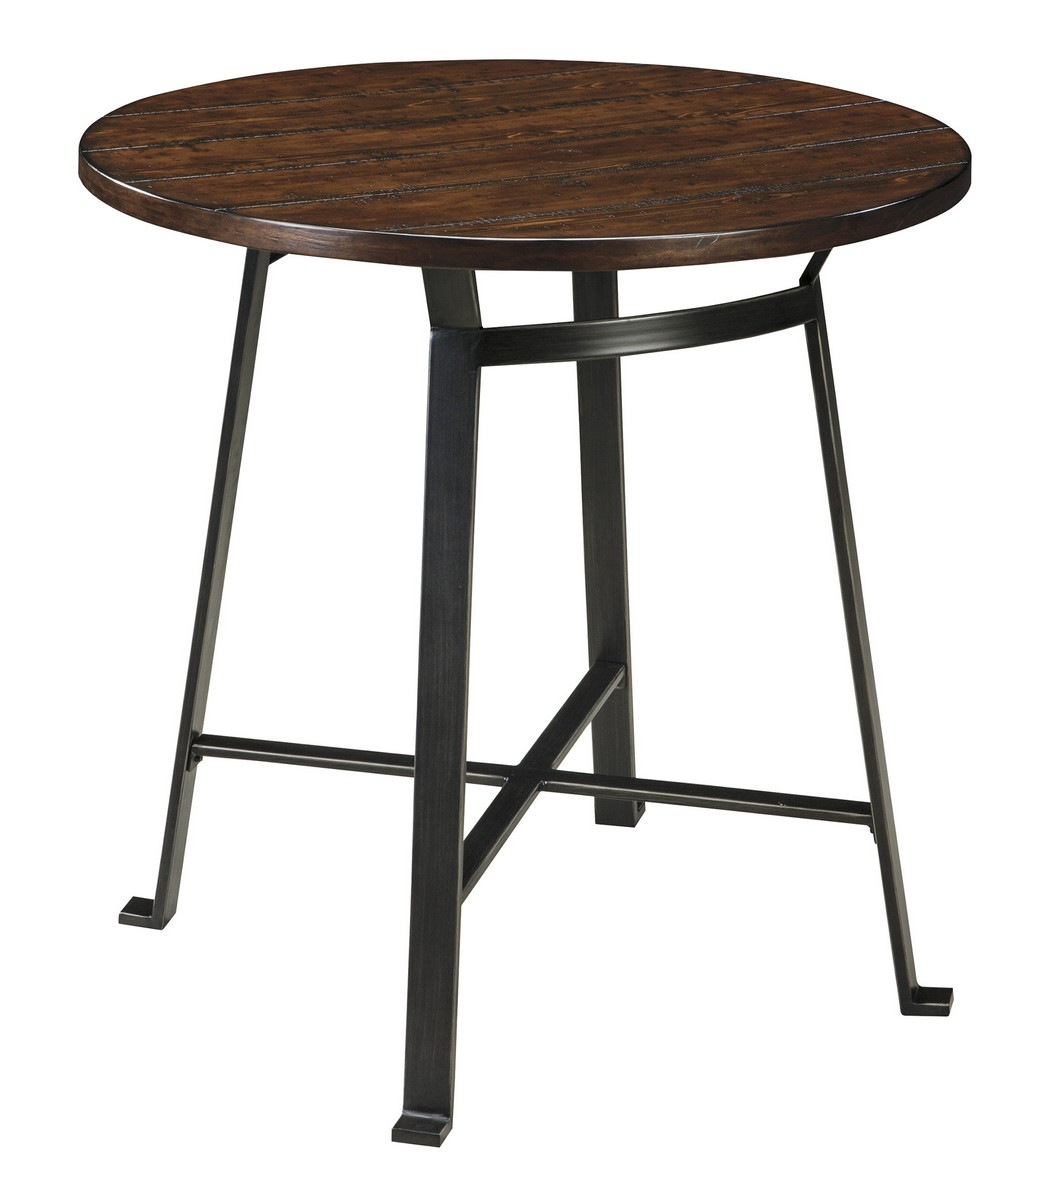 d307 12 ashley challiman round dining room bar table 36w x 36d x 42h